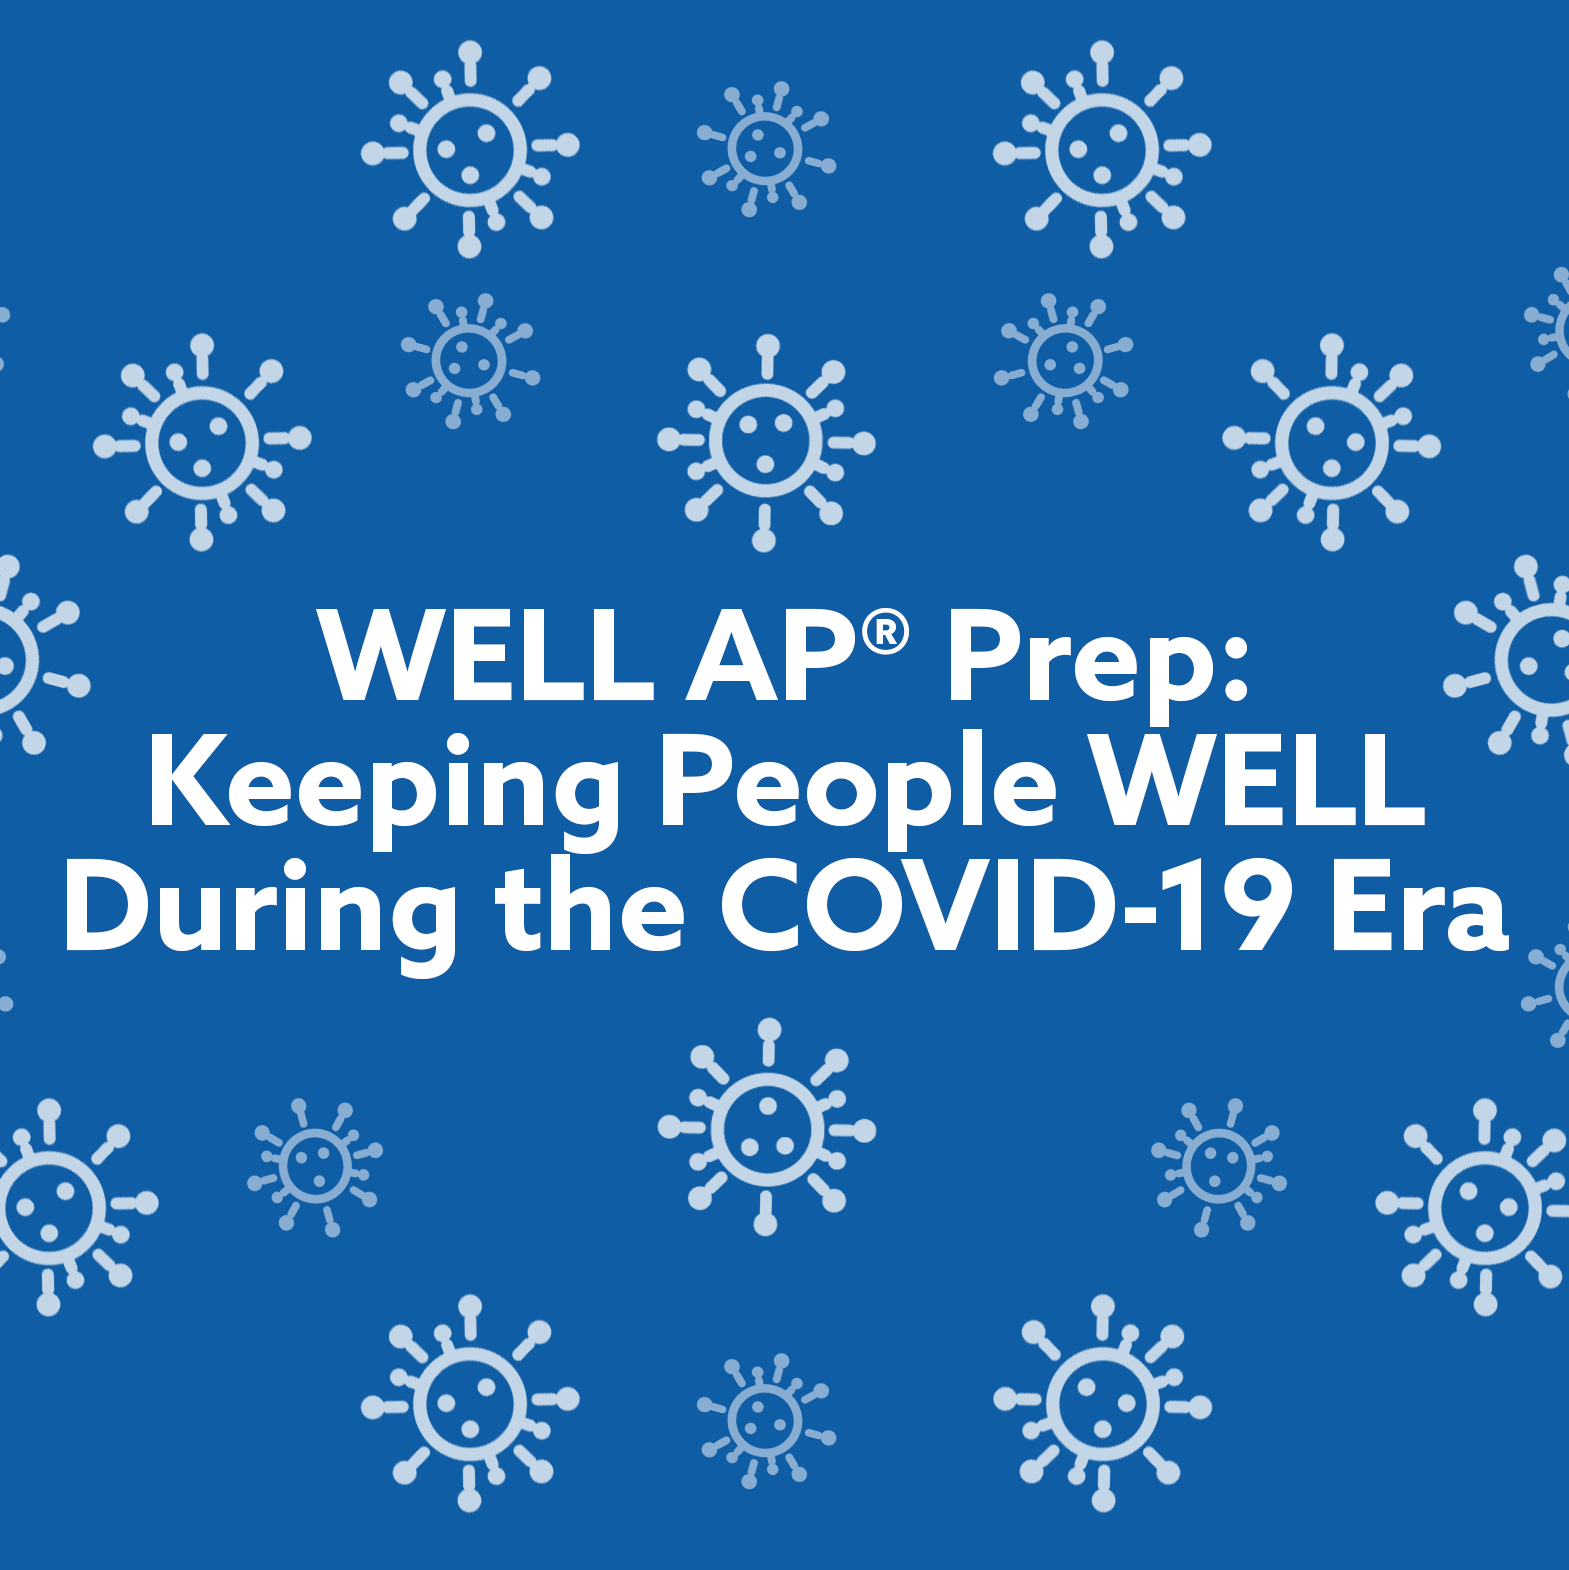 WELL AP Prep: Keeping People WELL During the COVID-19 Era: A WELL AP Exam Prep Course part of the Green Building Training Program.